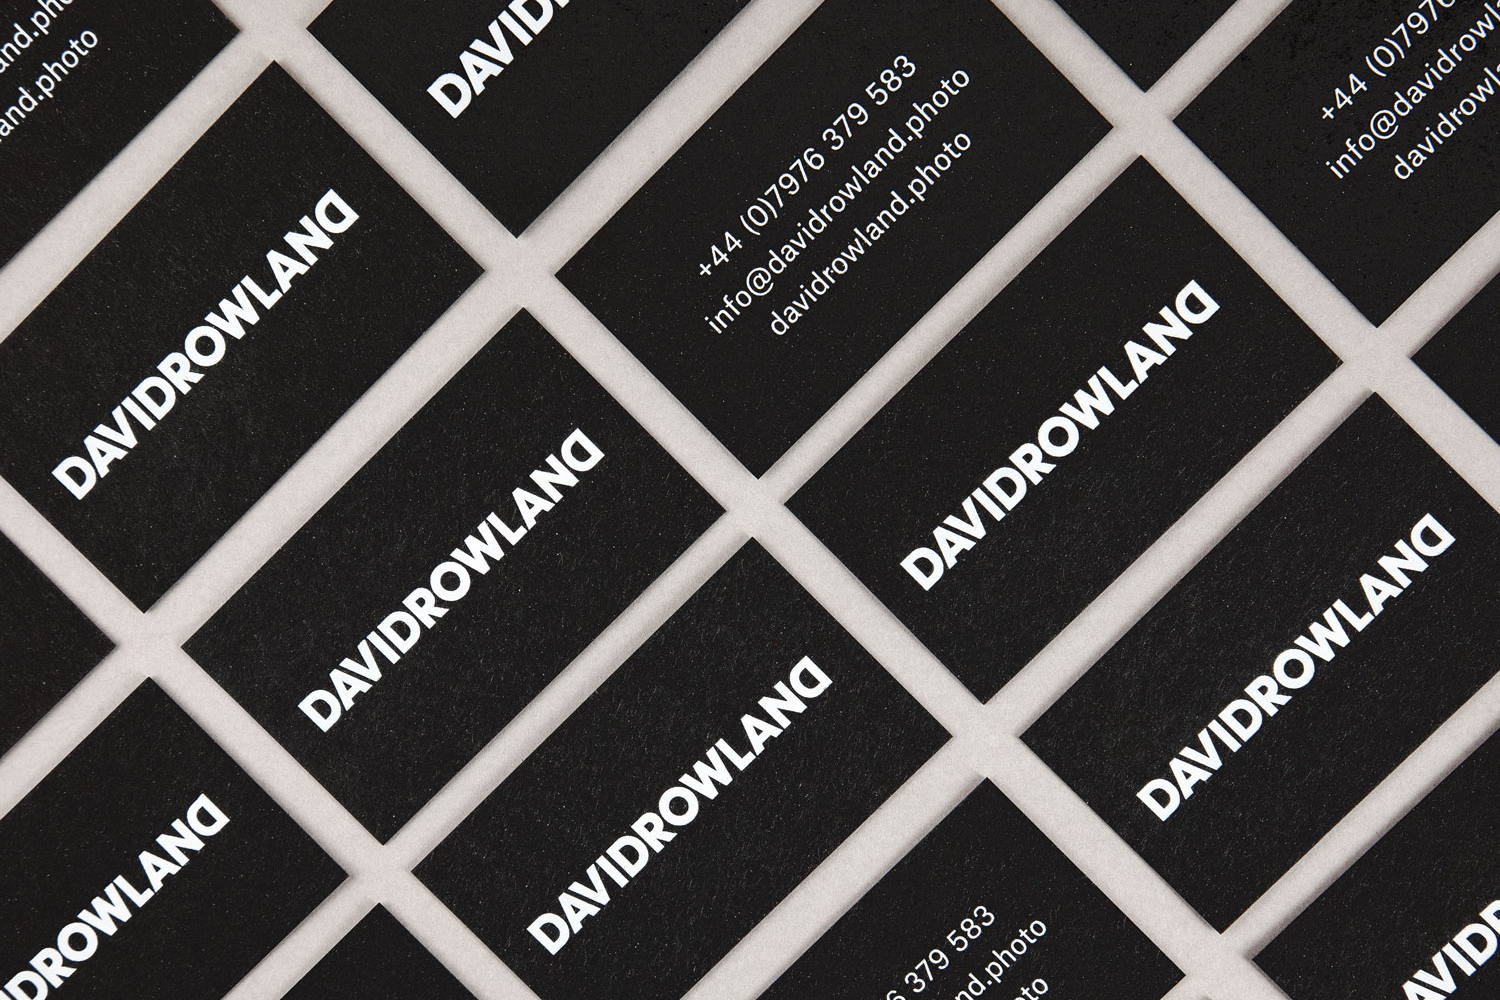 Black business cards with white ink detail by London-based graphic design studio ico Design for photographer David Rowland